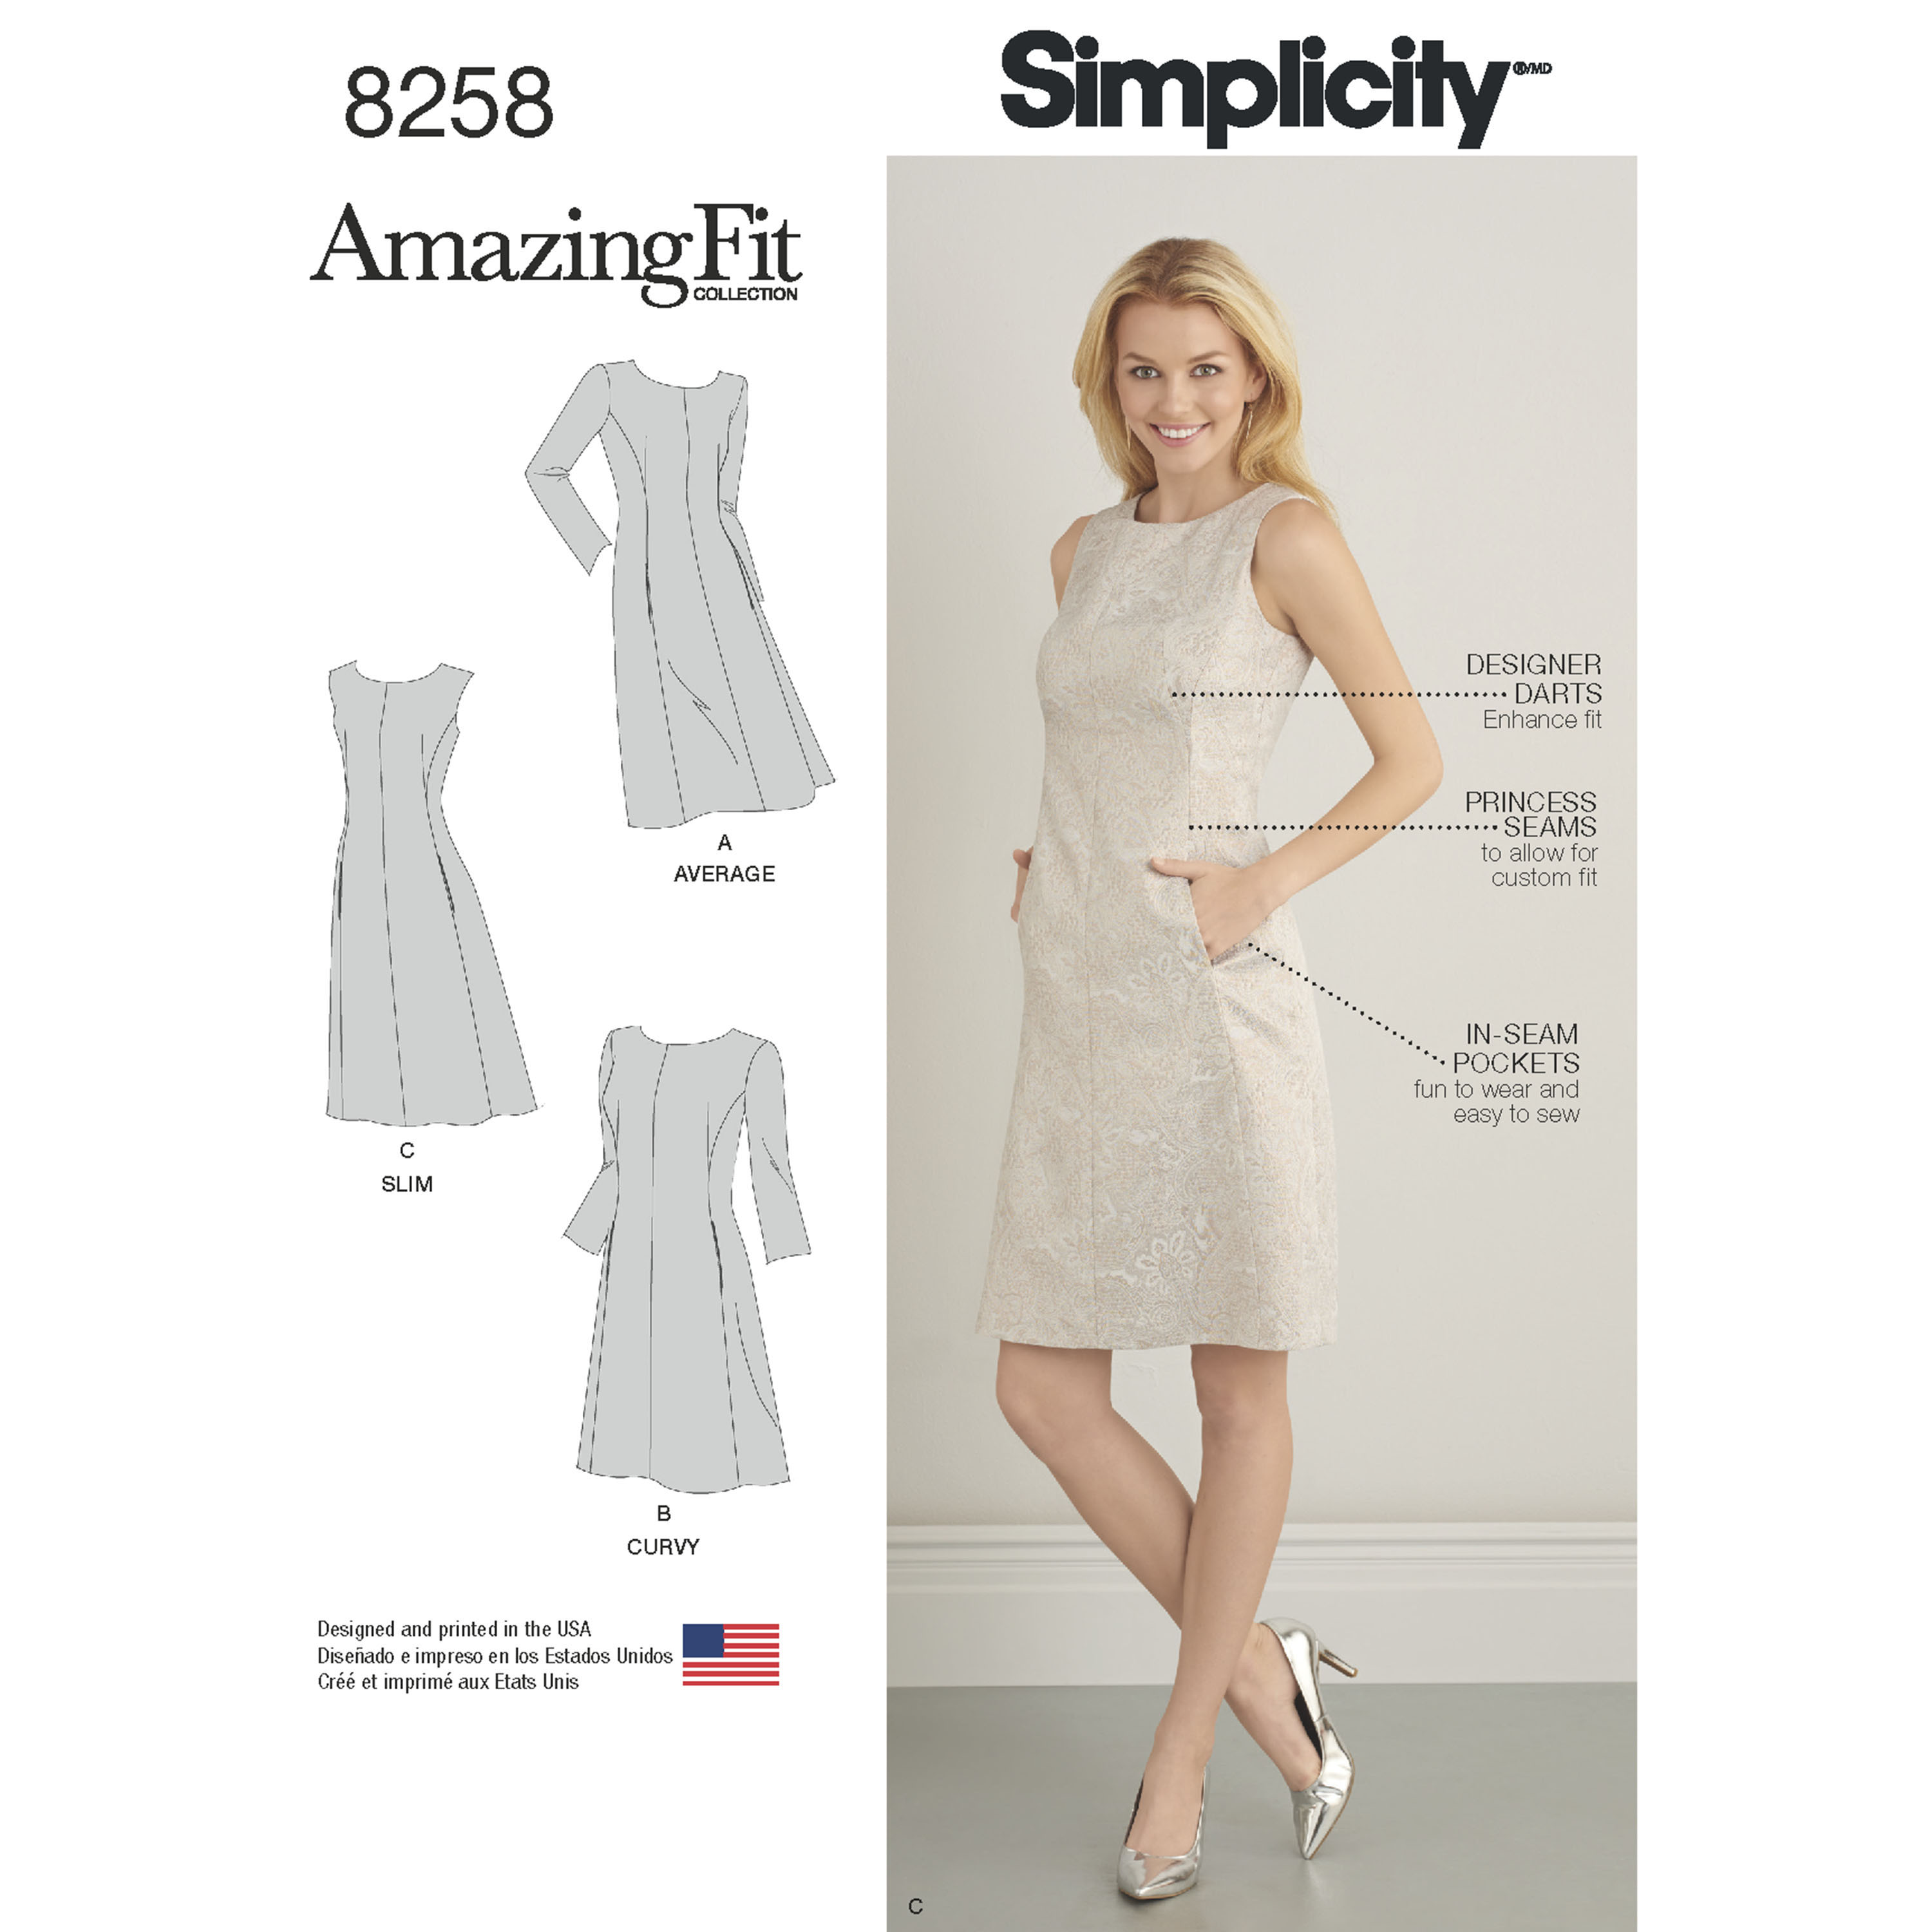 Simplicity Simplicity Pattern 8258 Misses' and Plus Size ...